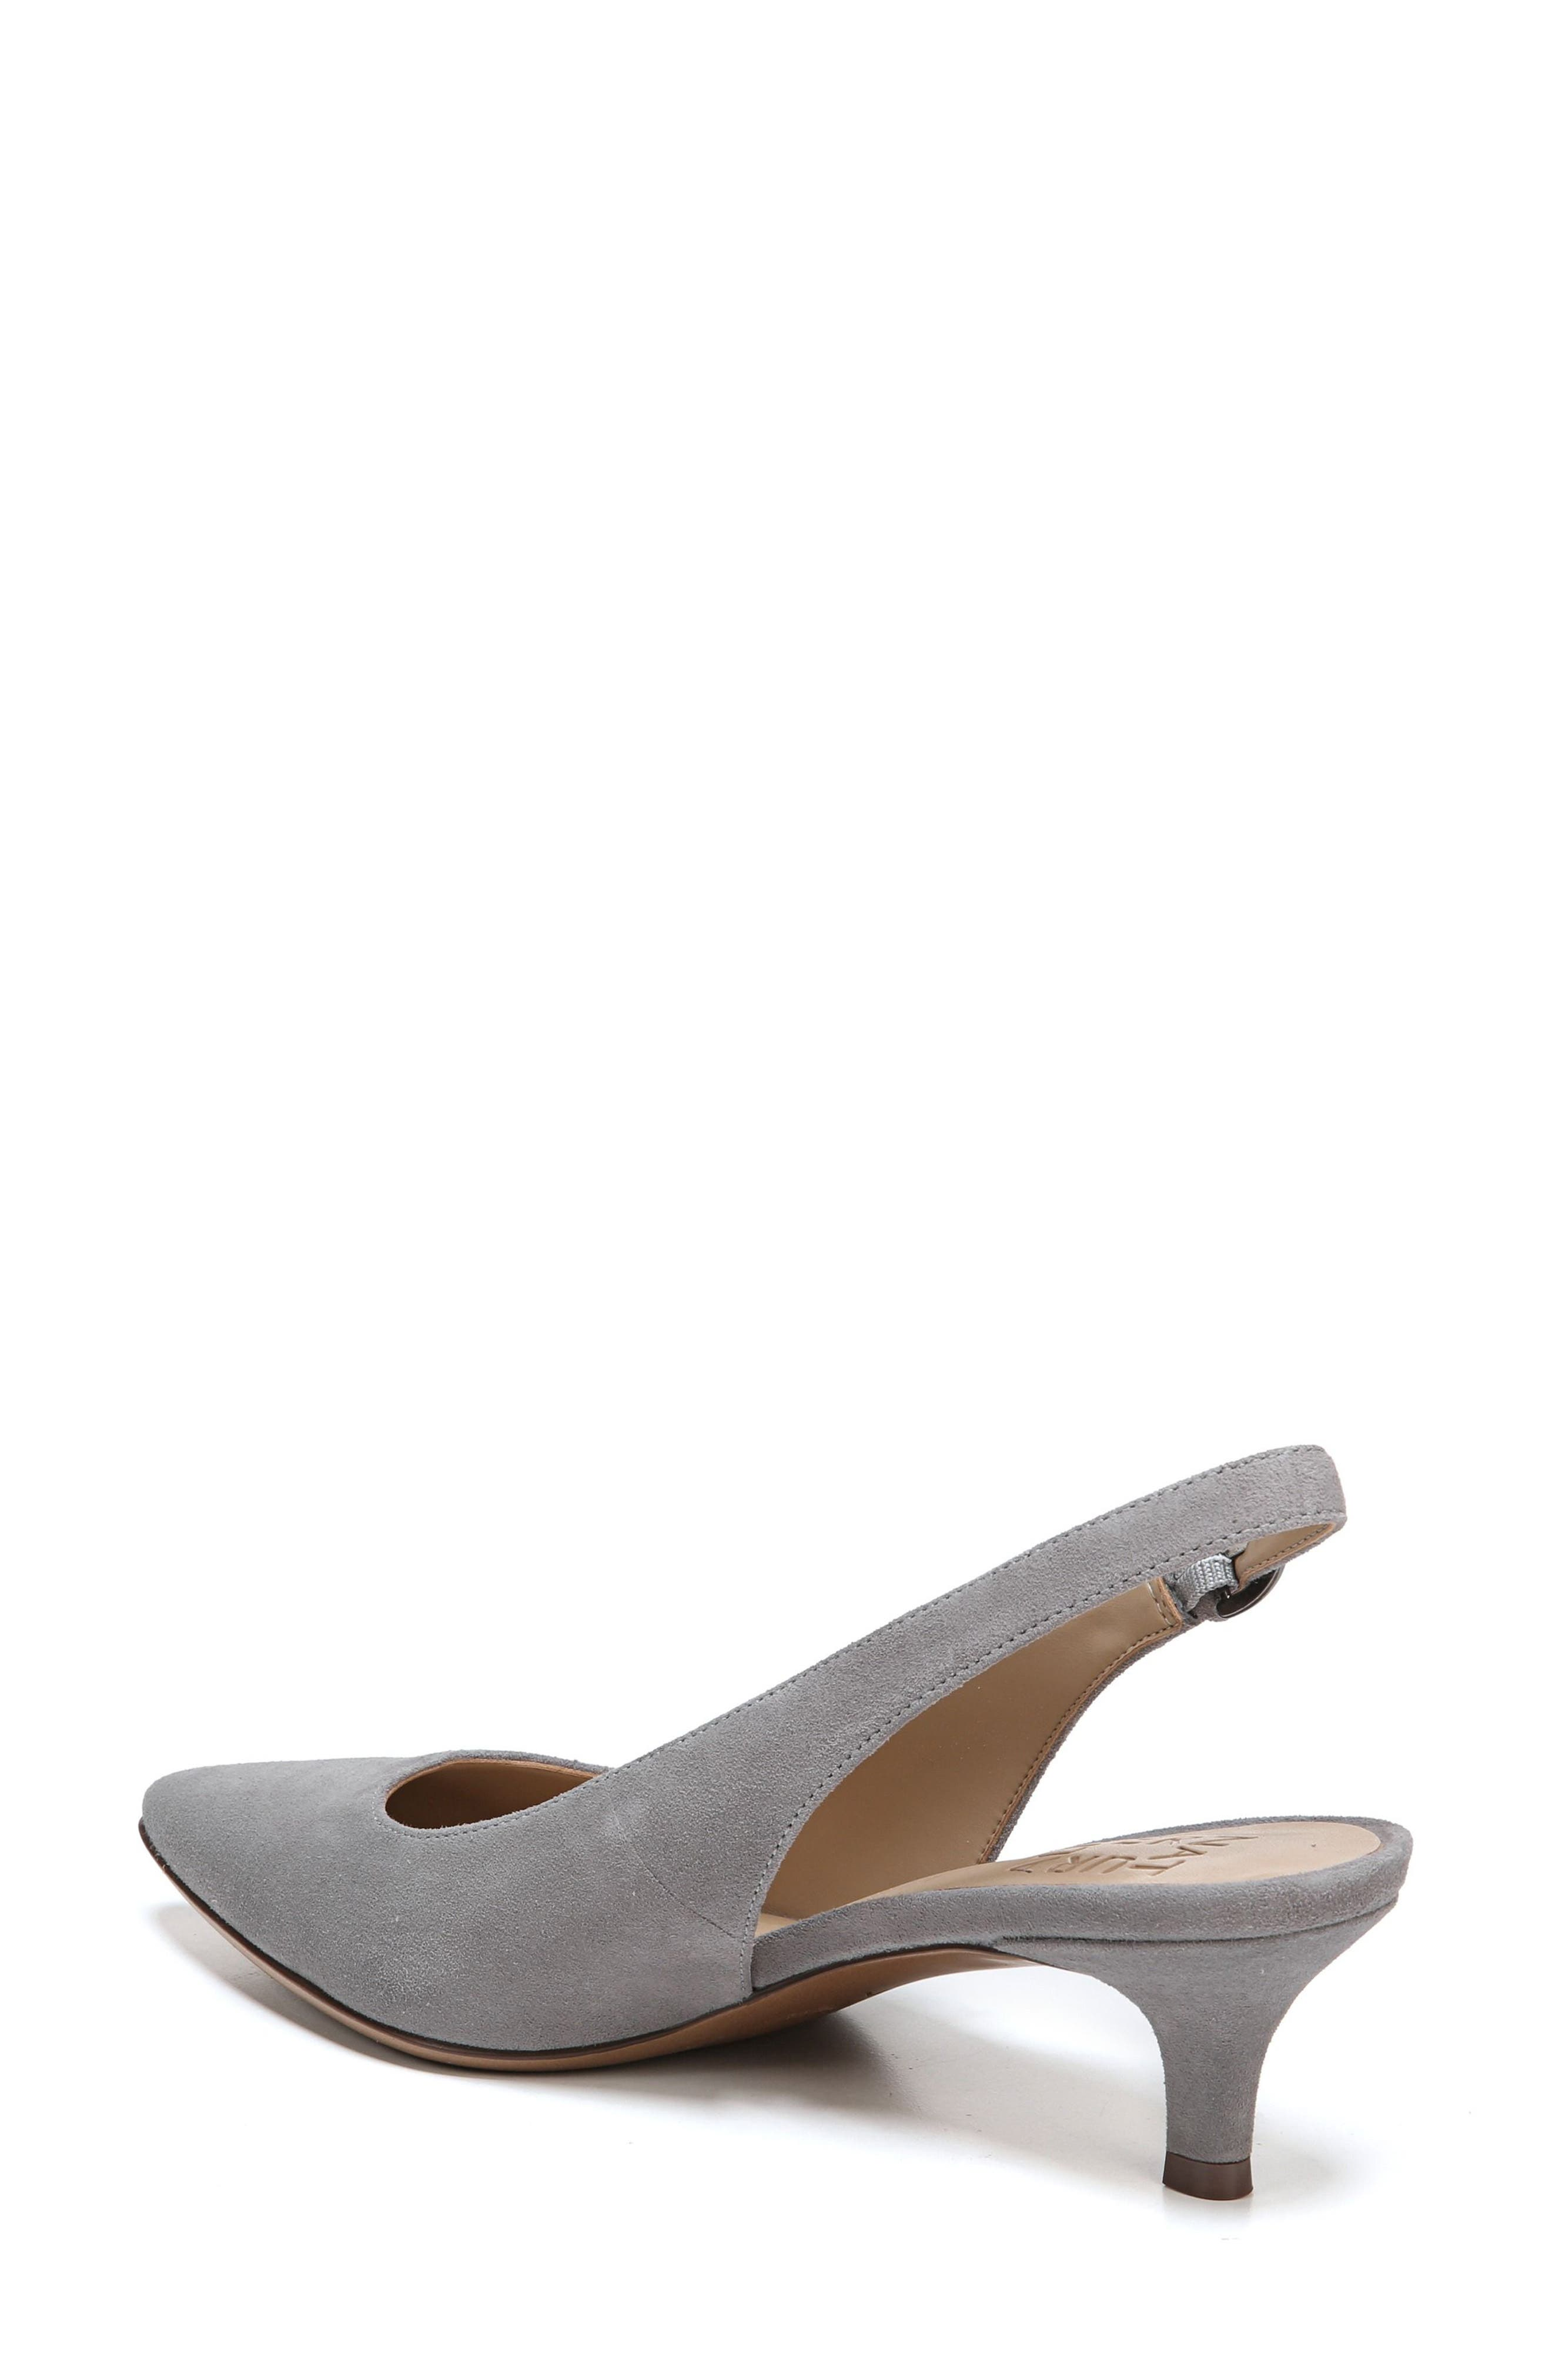 Slingback Pump,                             Alternate thumbnail 2, color,                             GREY SUEDE